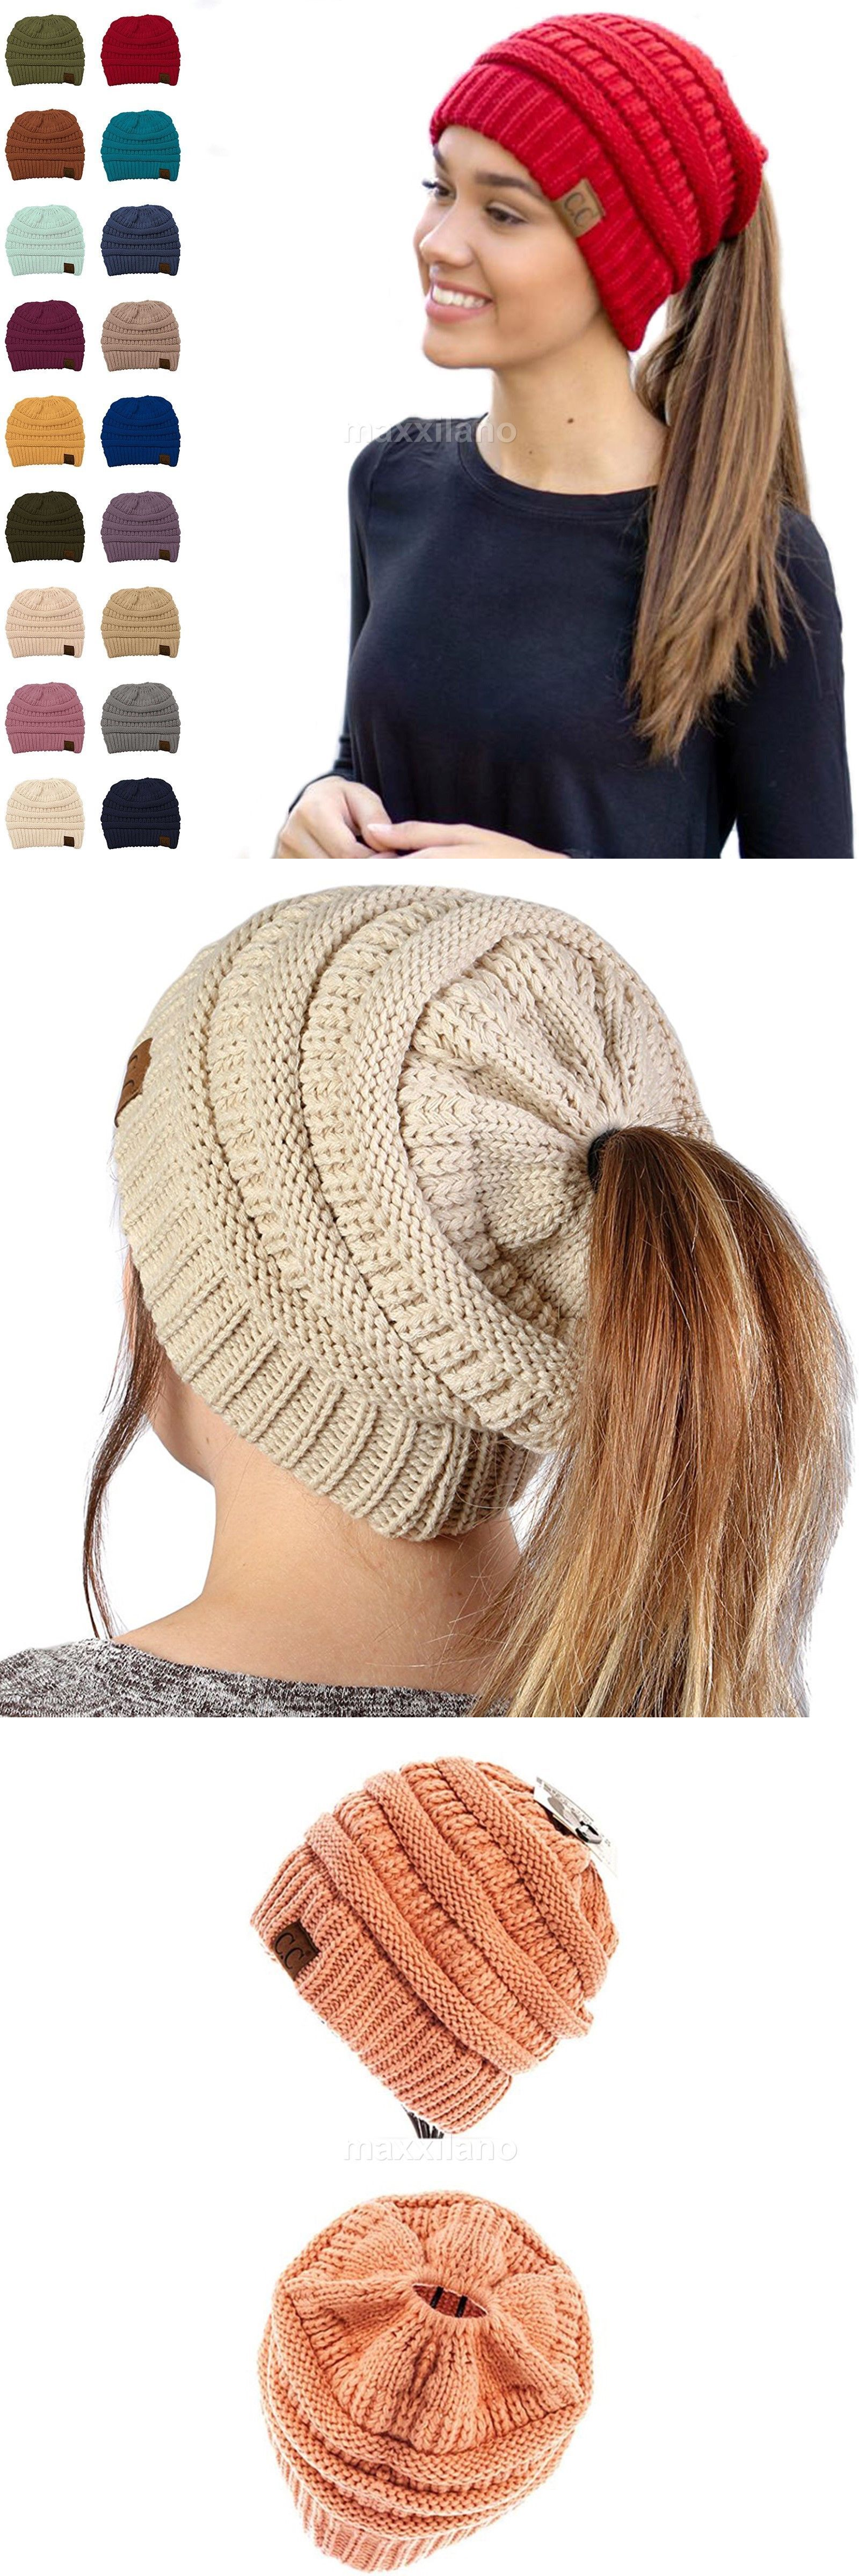 e8647ef4 Clothing, Shoes & Accessories CC Beanie Tail Messy High Bun Ponytail Hat  Knit Beanie Cap Hole Women's Accessories